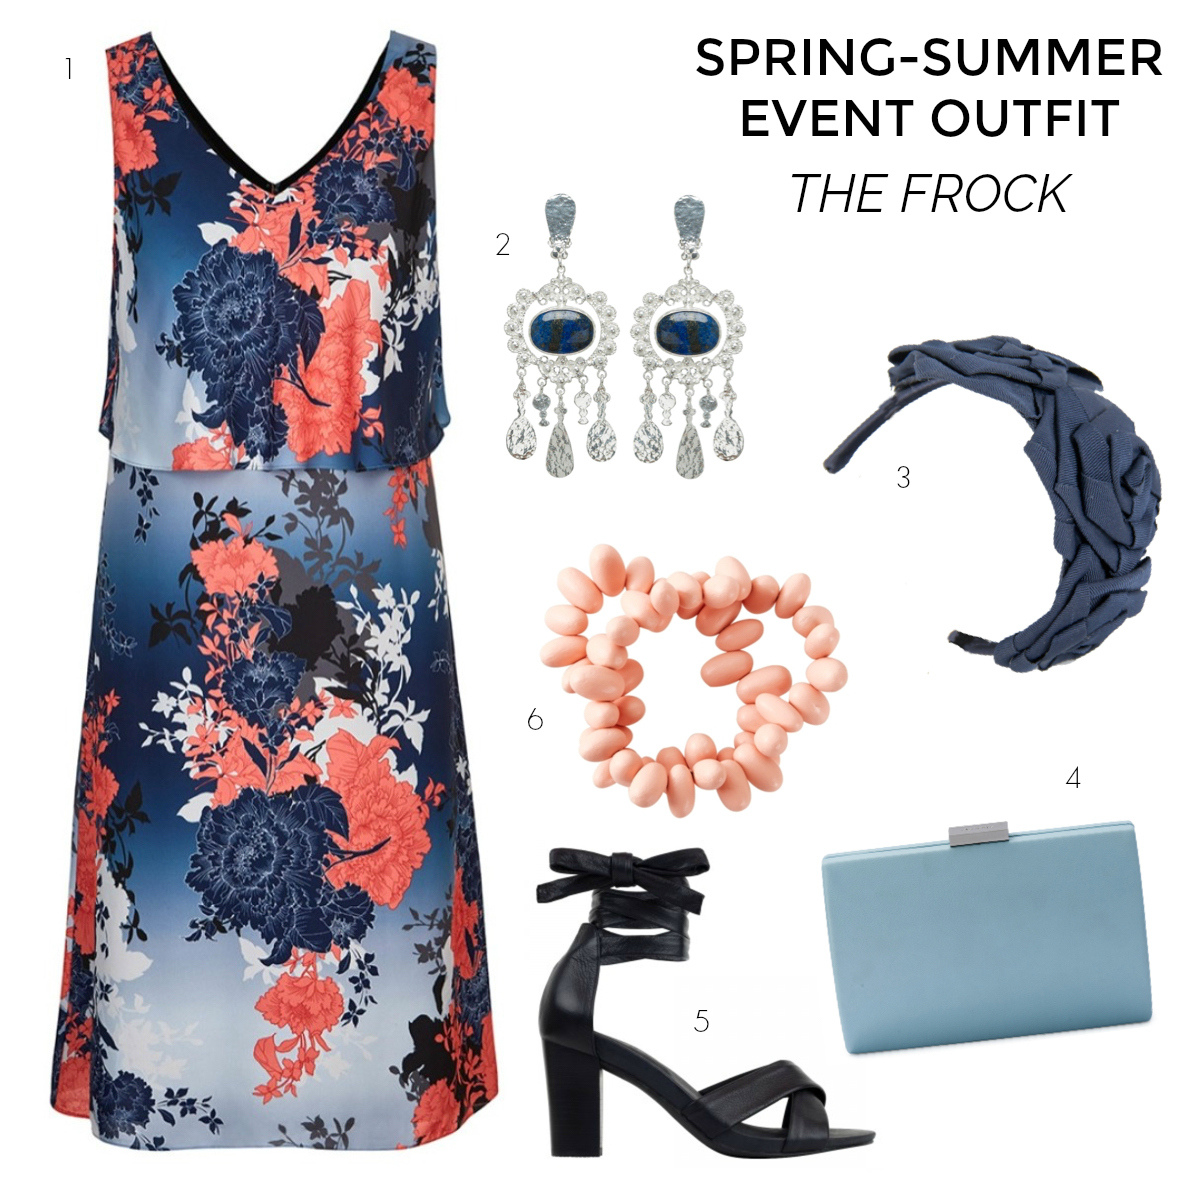 spring-summer occasion or event wardrobe - the frock Styling You